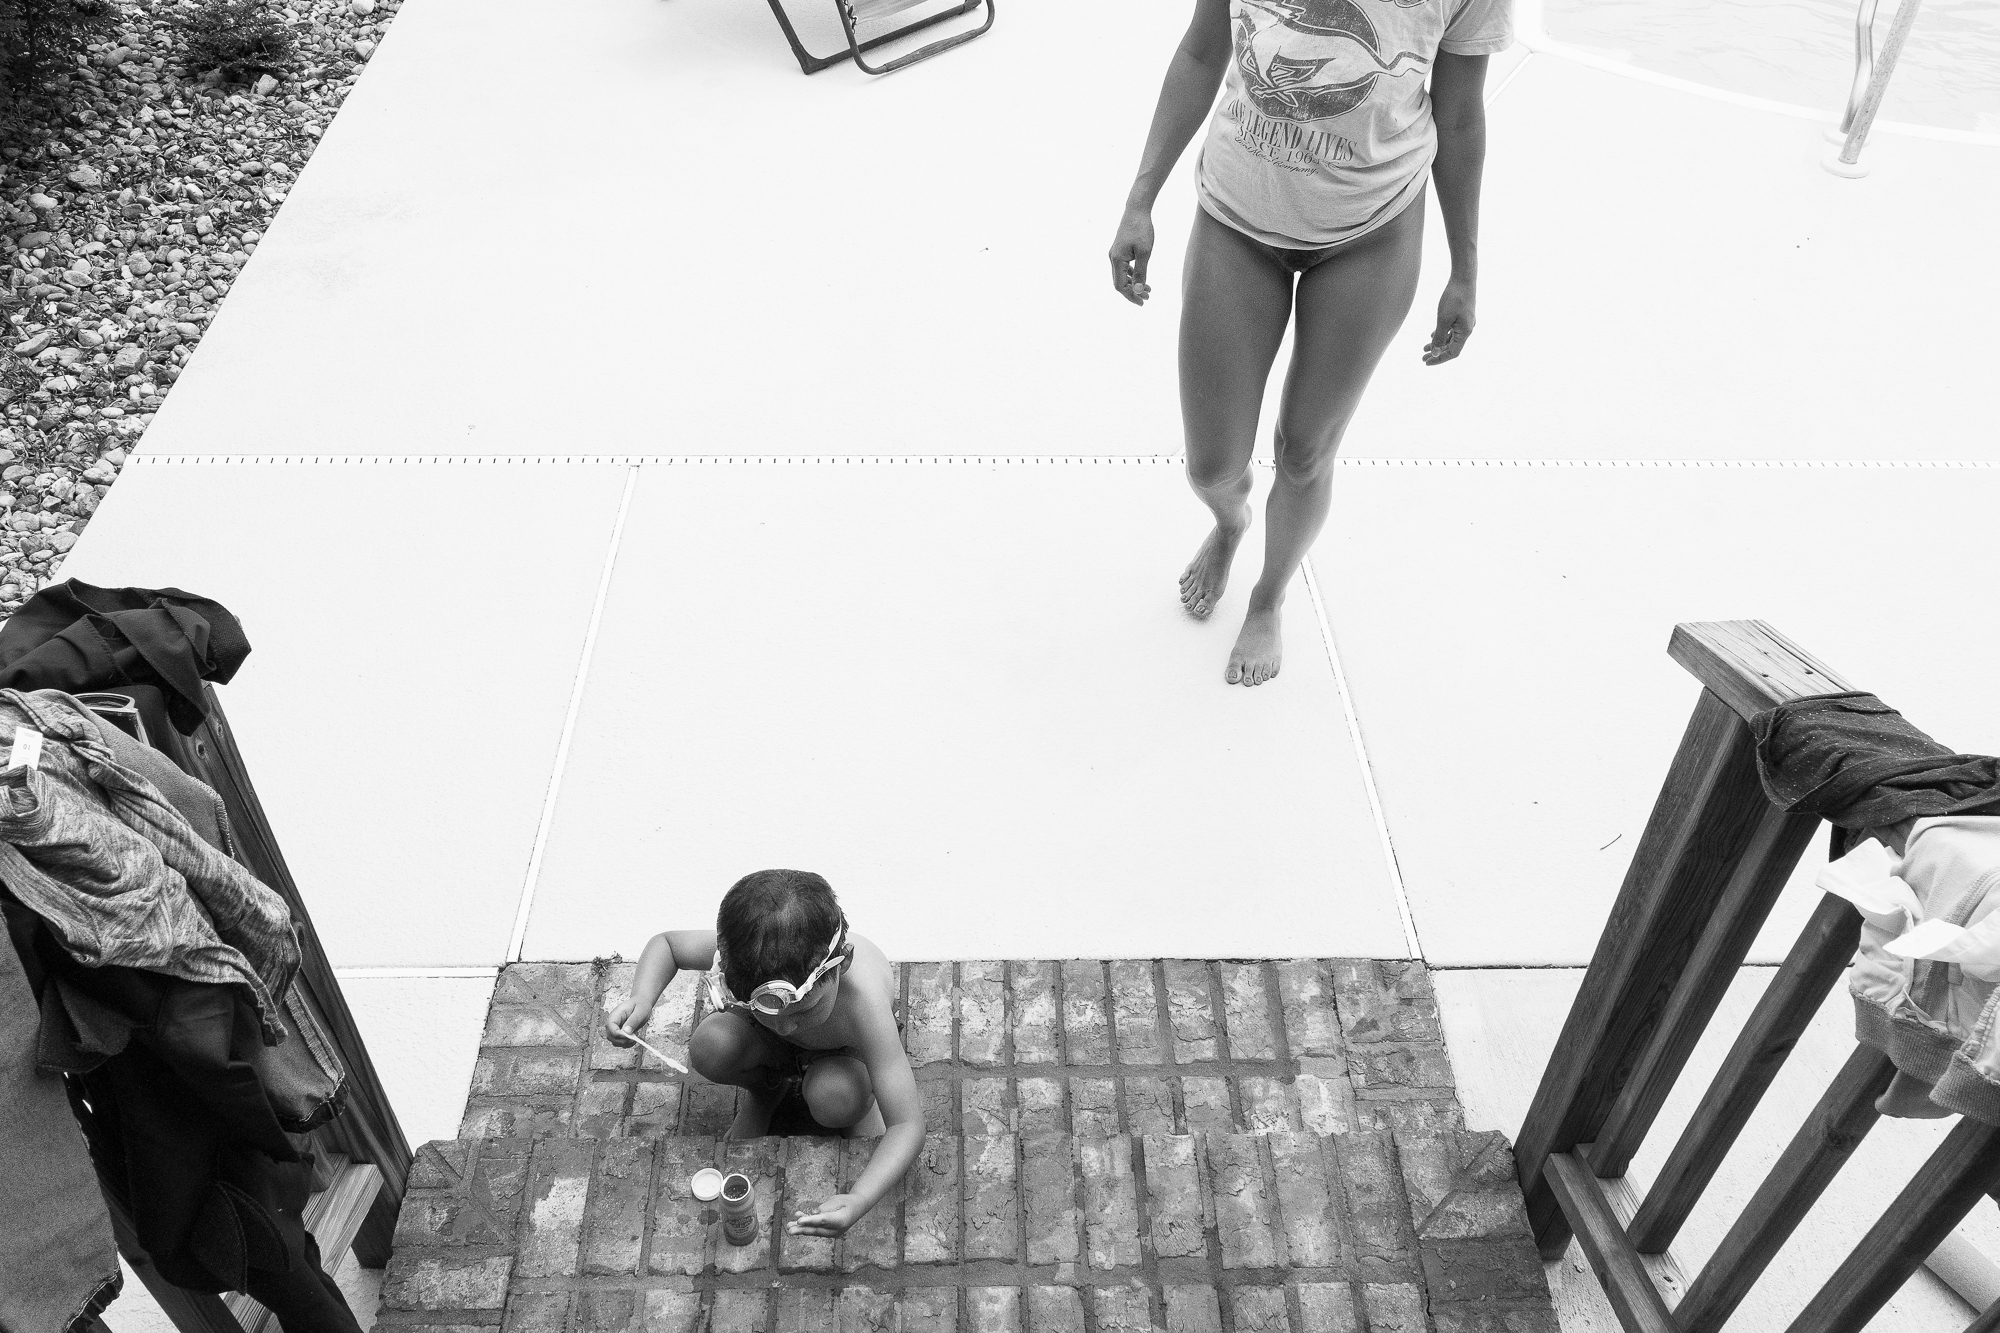 20170530-Hannah-a-day-in-the-life-X-Pro2-0405.jpg